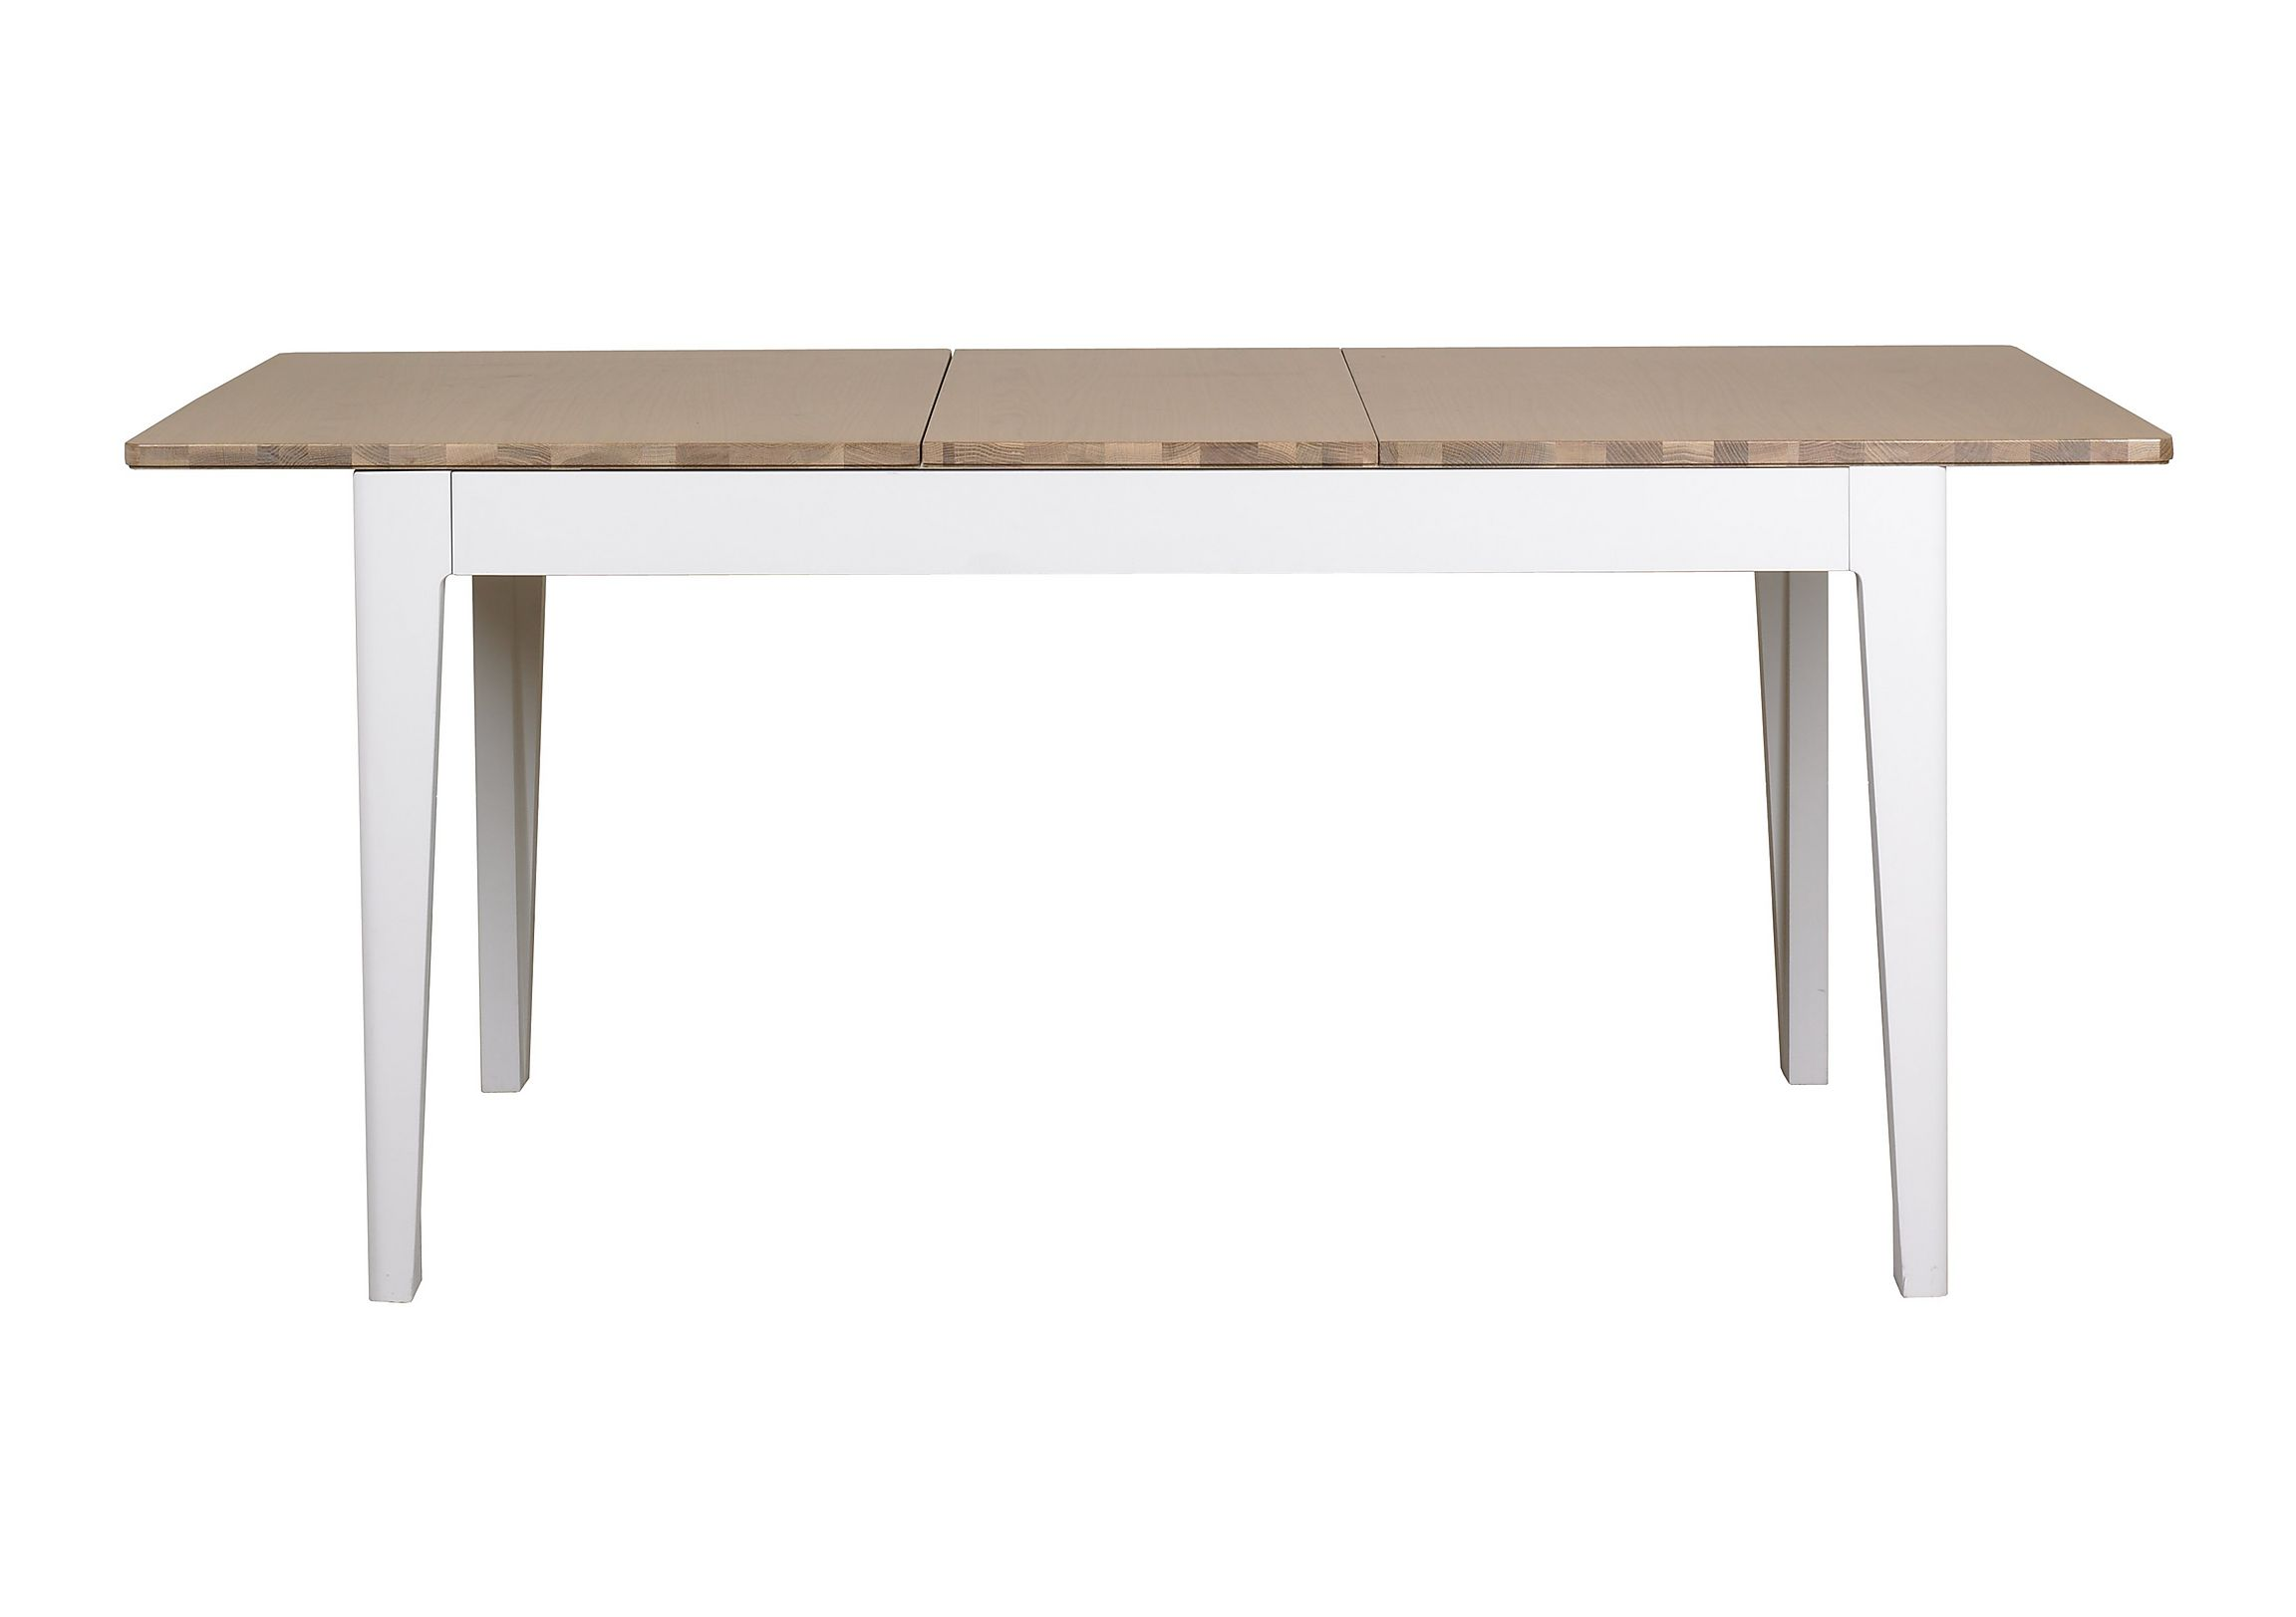 Clarissa 4 Seater Dining Table